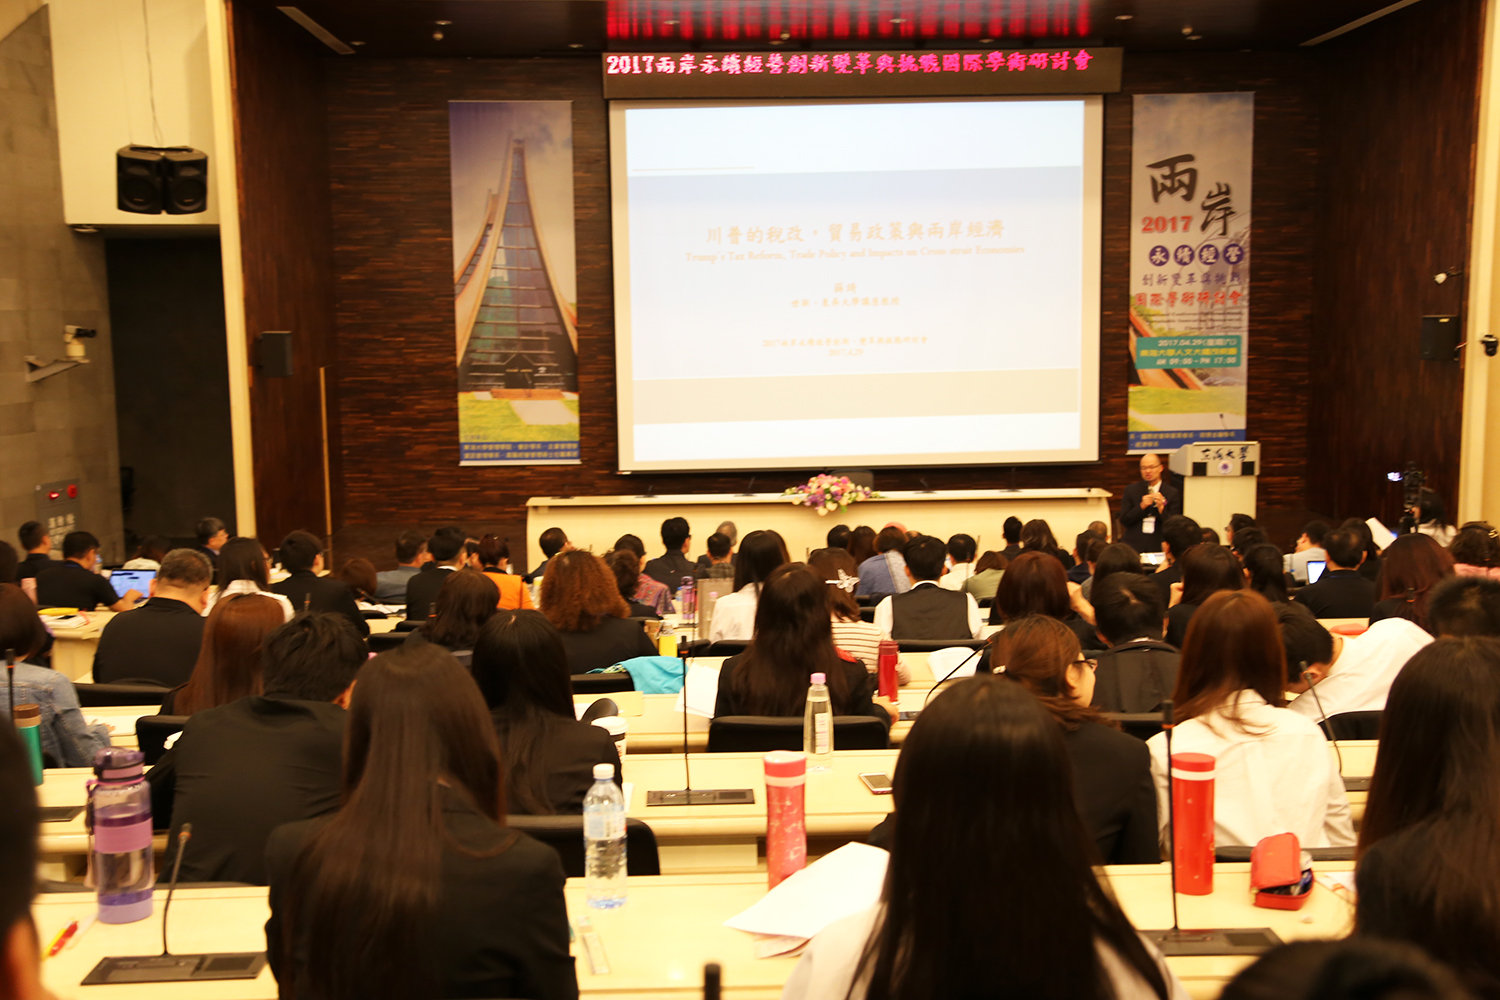 The seminar covered a broad spectrum of topics, hoping to generate more interactions regarding international business administration academically and practically.